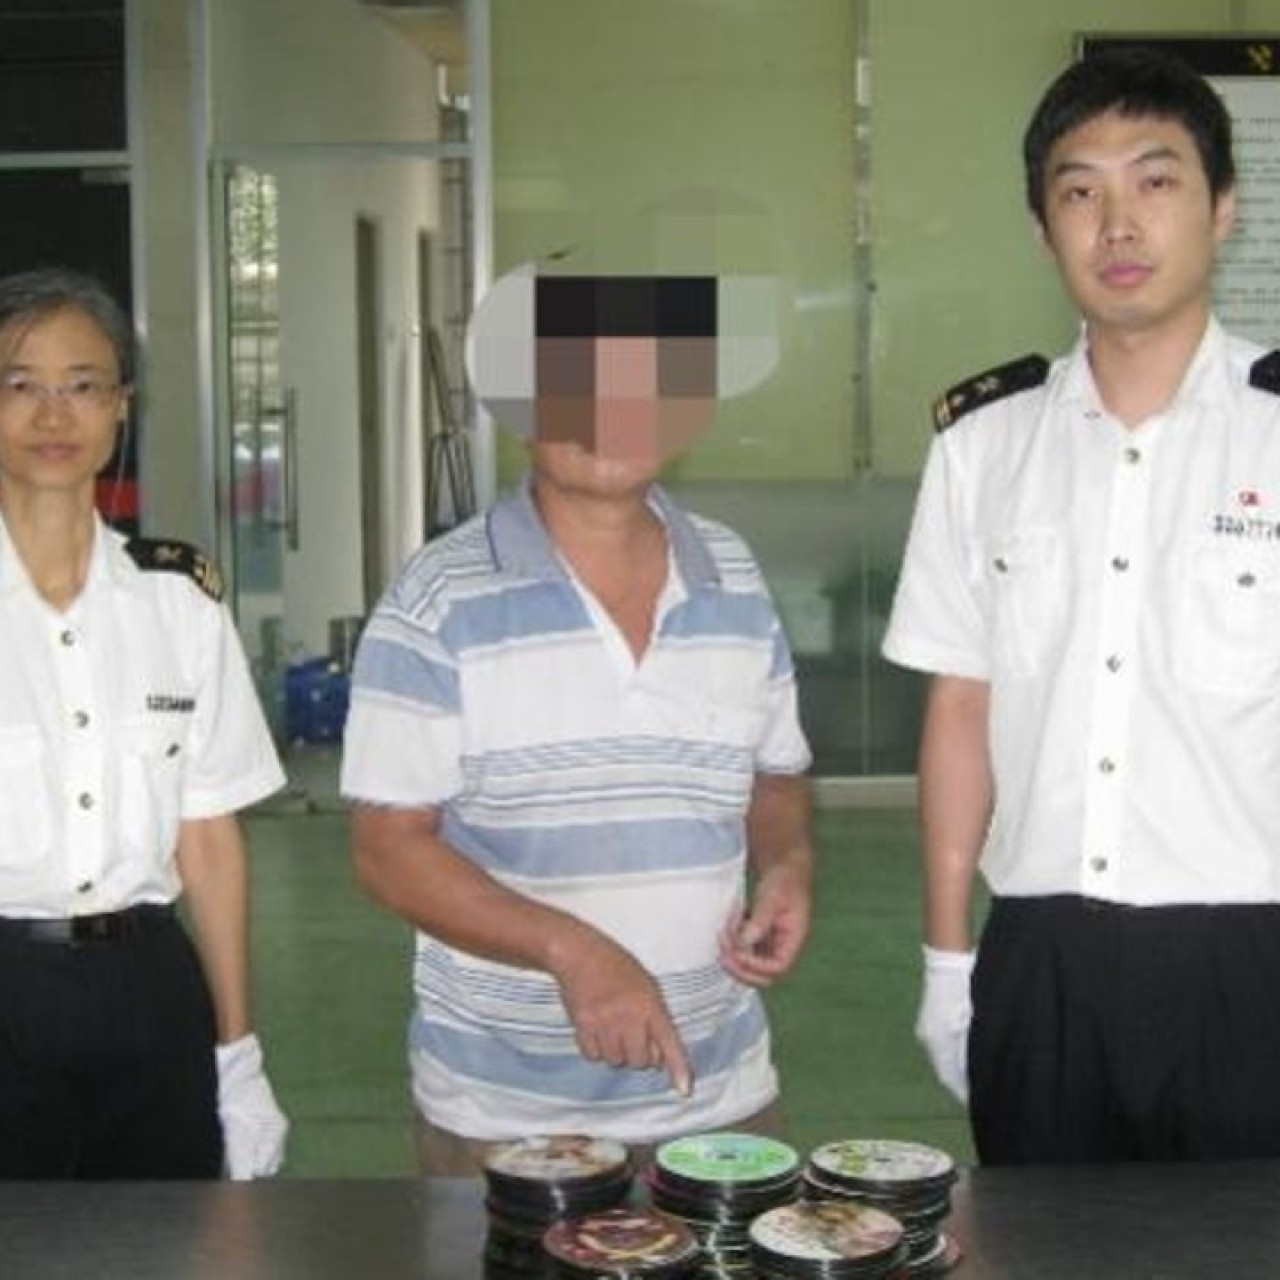 Hong Kong man arrested at border for carrying 276 porn DVDs ...